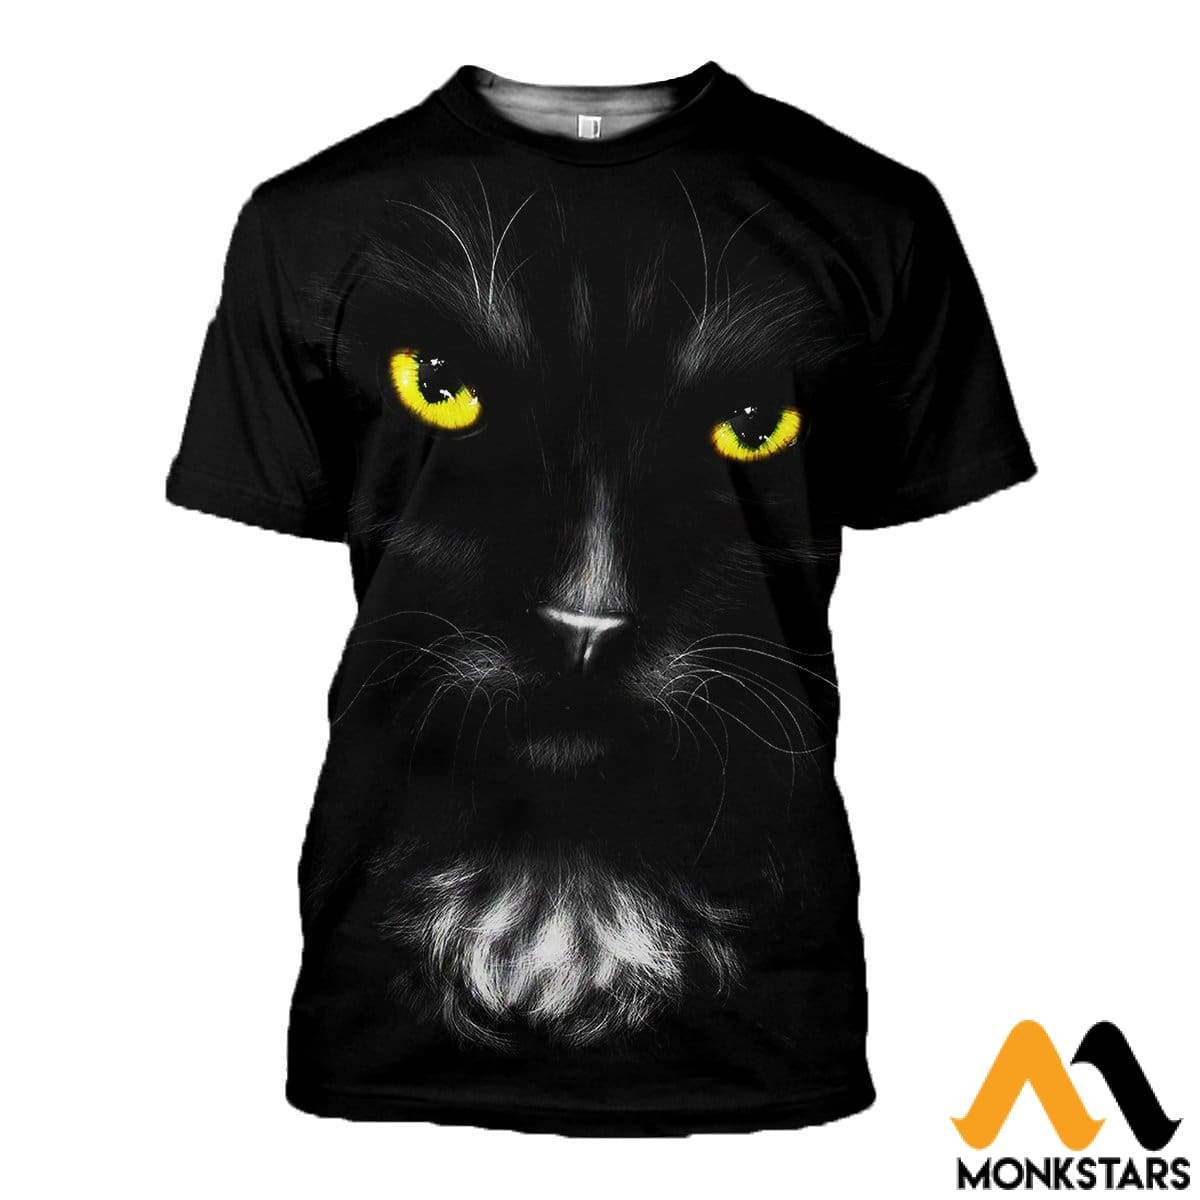 3D All Over Printed Black Cat T-Shirt Hoodie Saul170407 / Xs Clothes